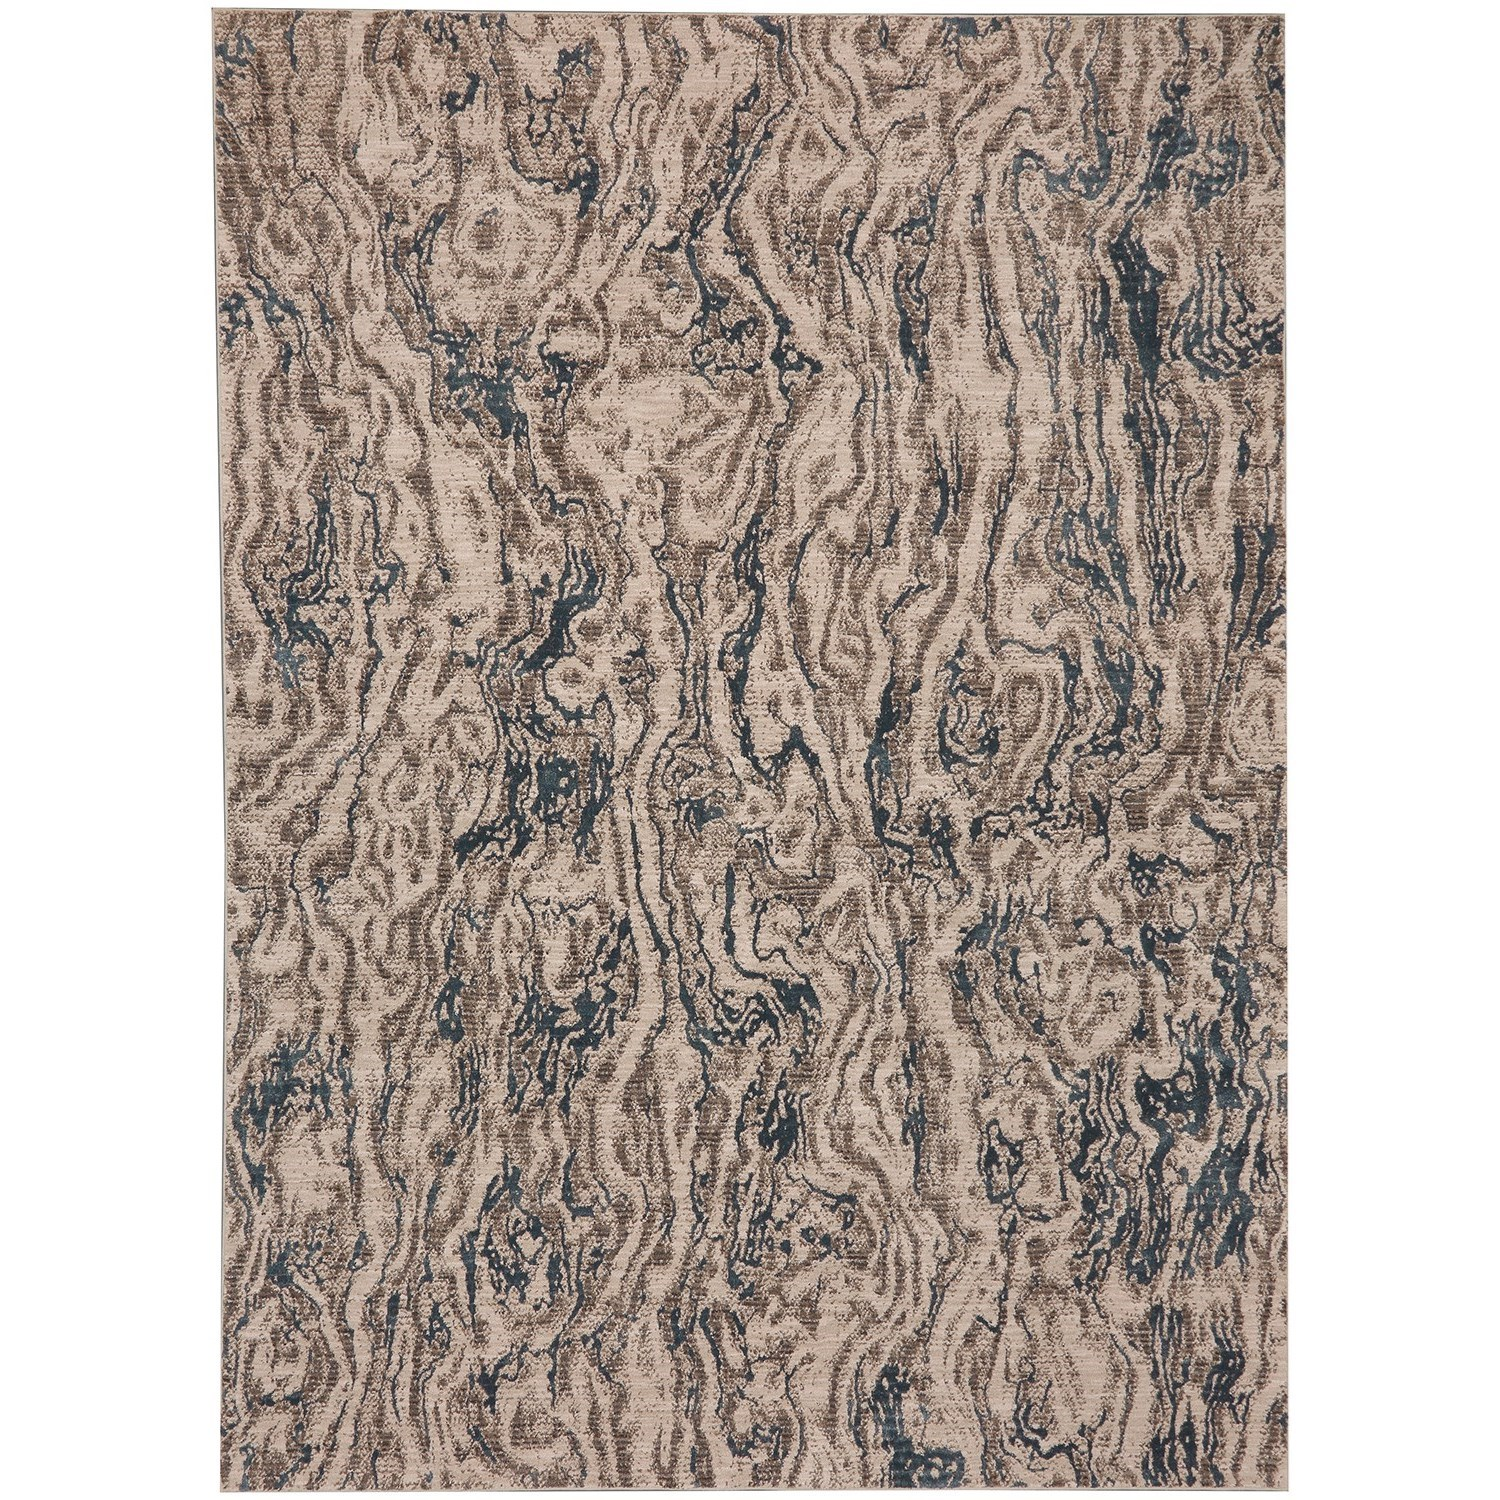 "5' 3""x7' 10"" Rectangle Abstract Area Rug"